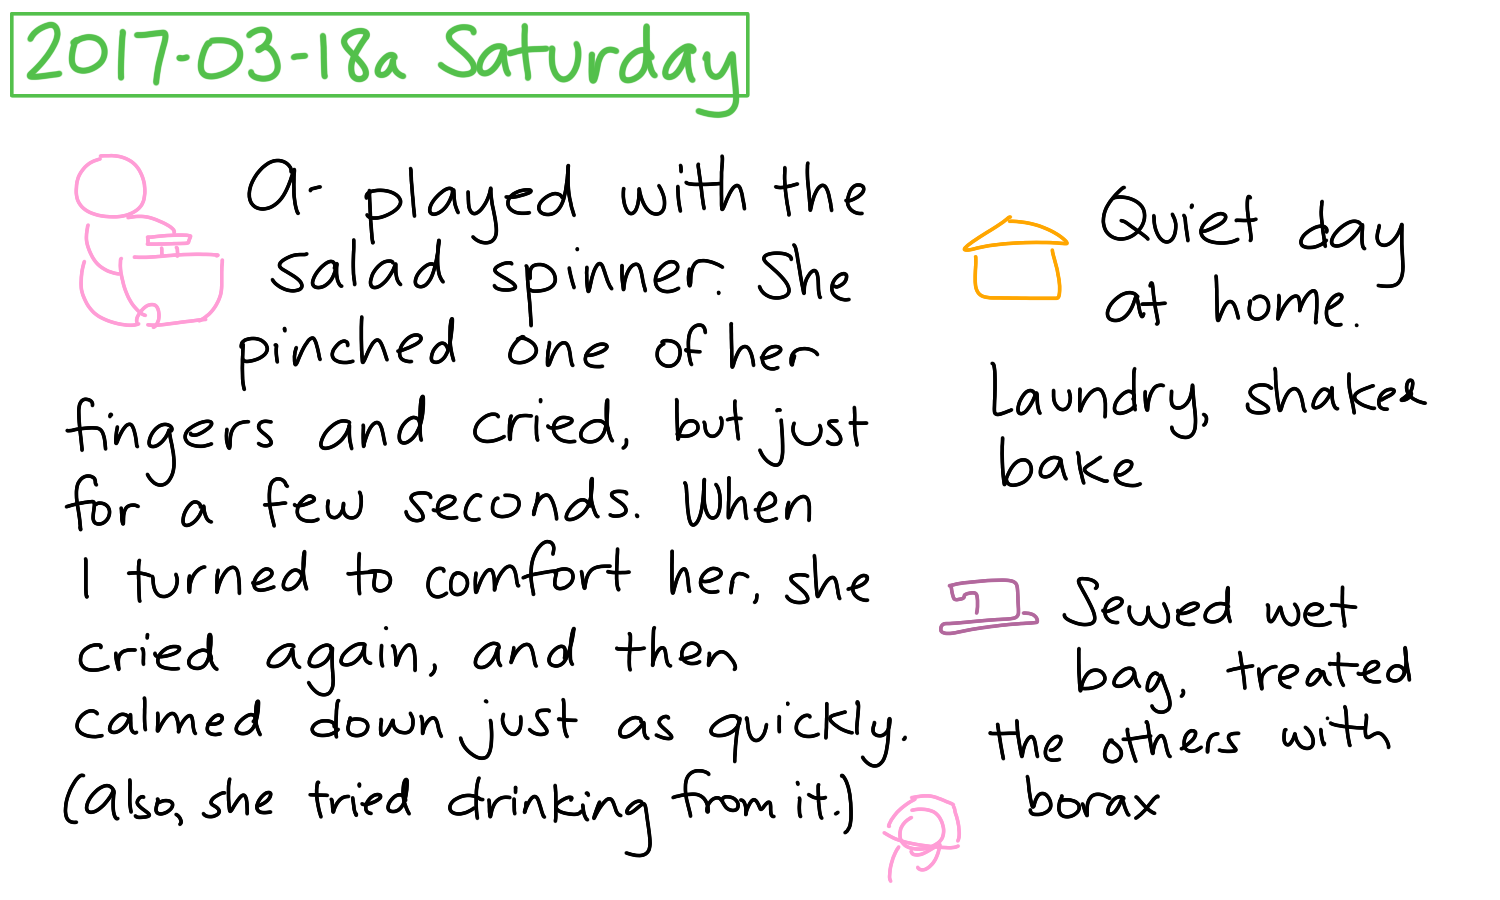 2017-03-18a Saturday #daily #journal.png